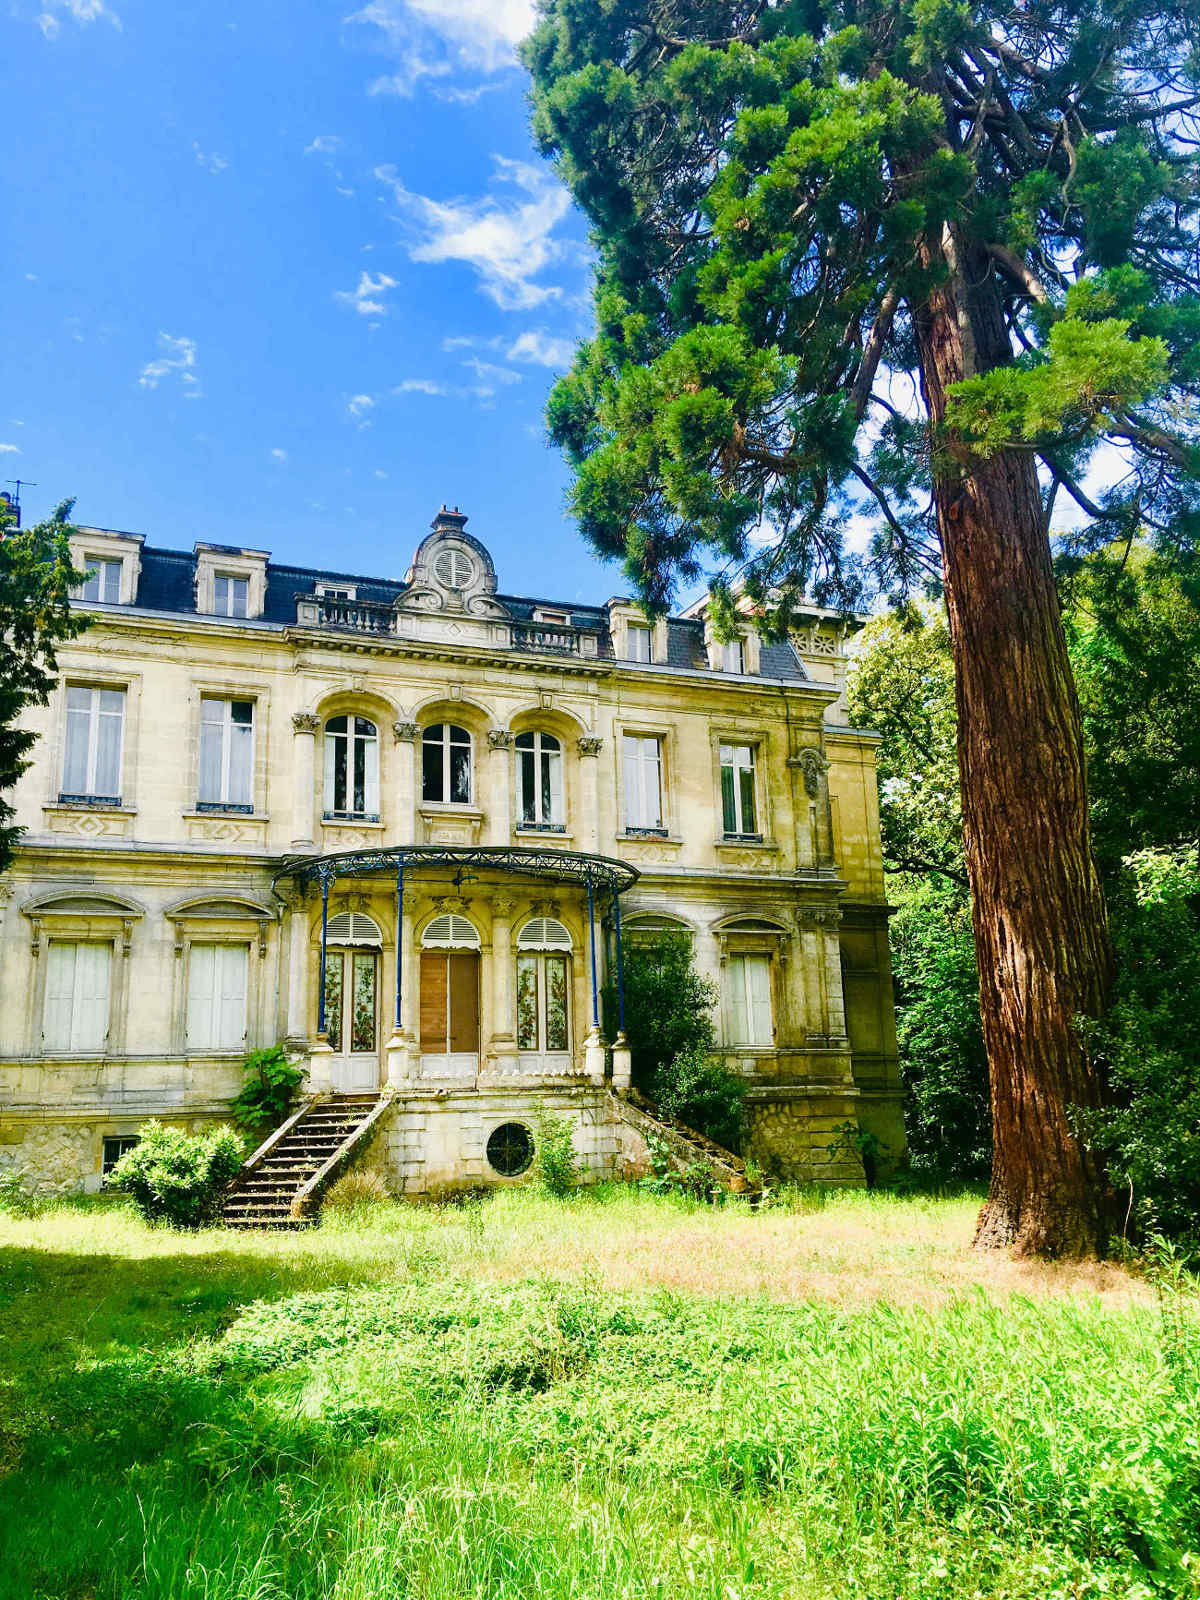 Chateau-agence-immobiliere